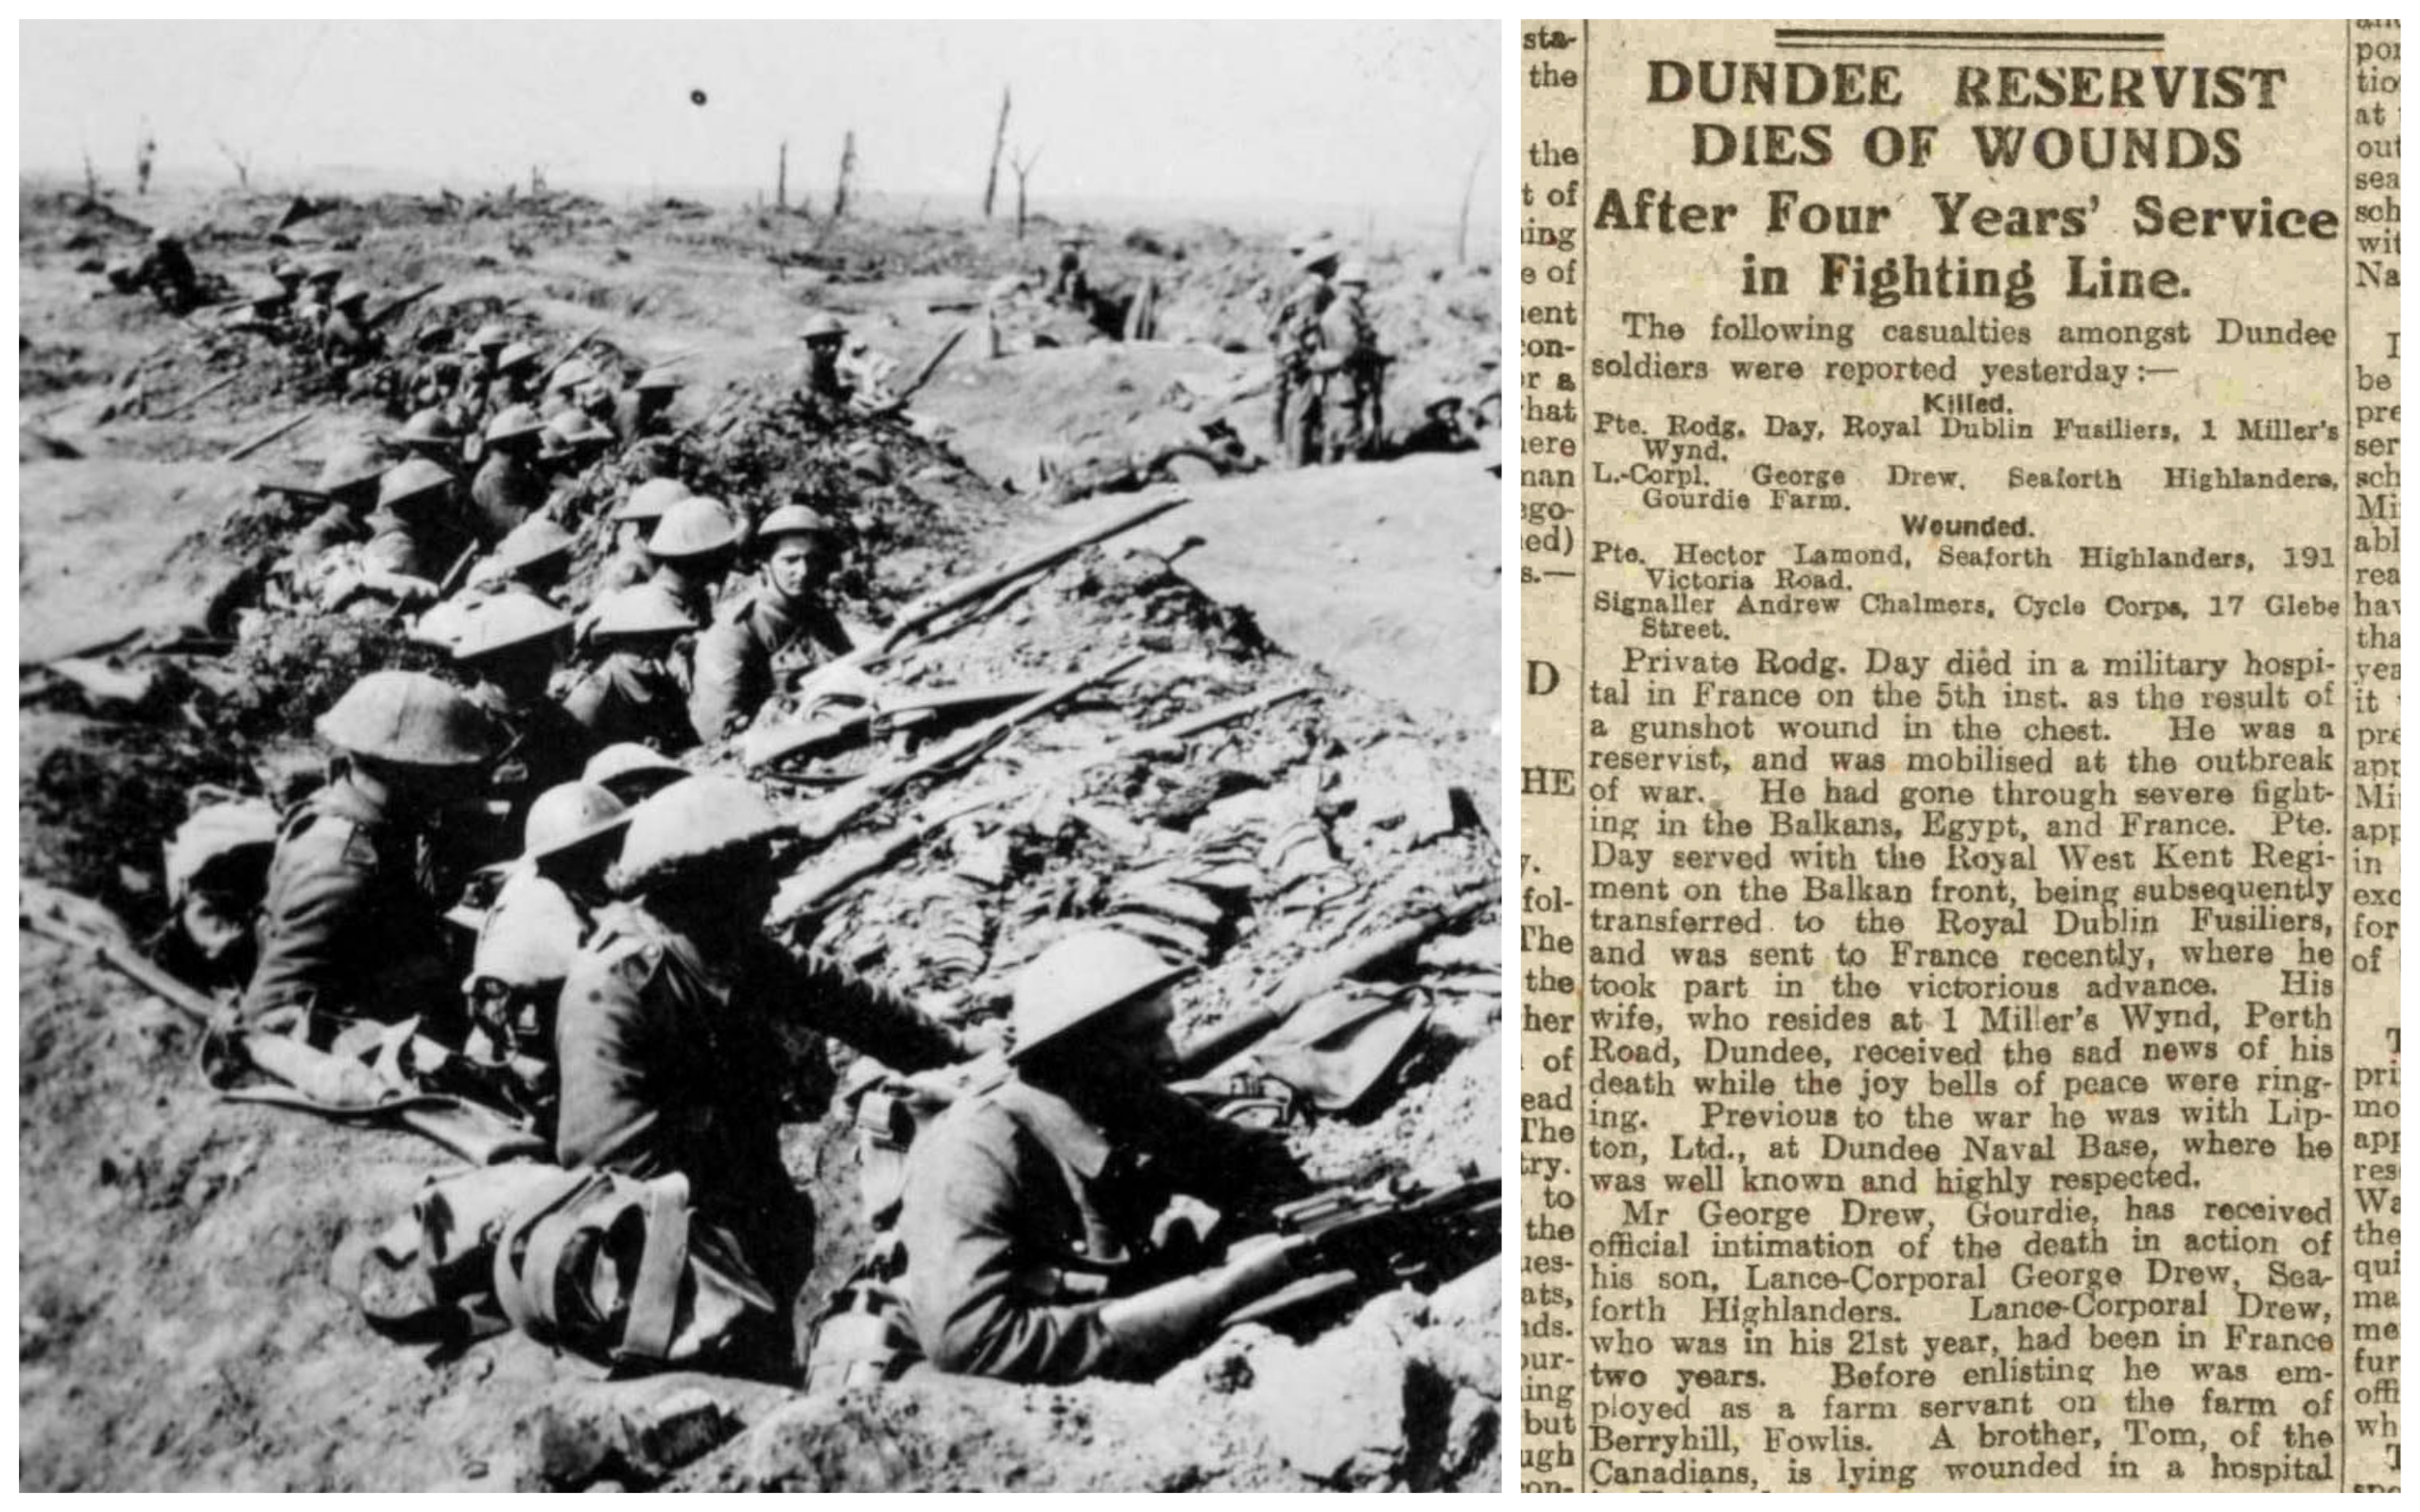 British troops (credit: PA Archive/Press Association) and the article as it appeared in 1918